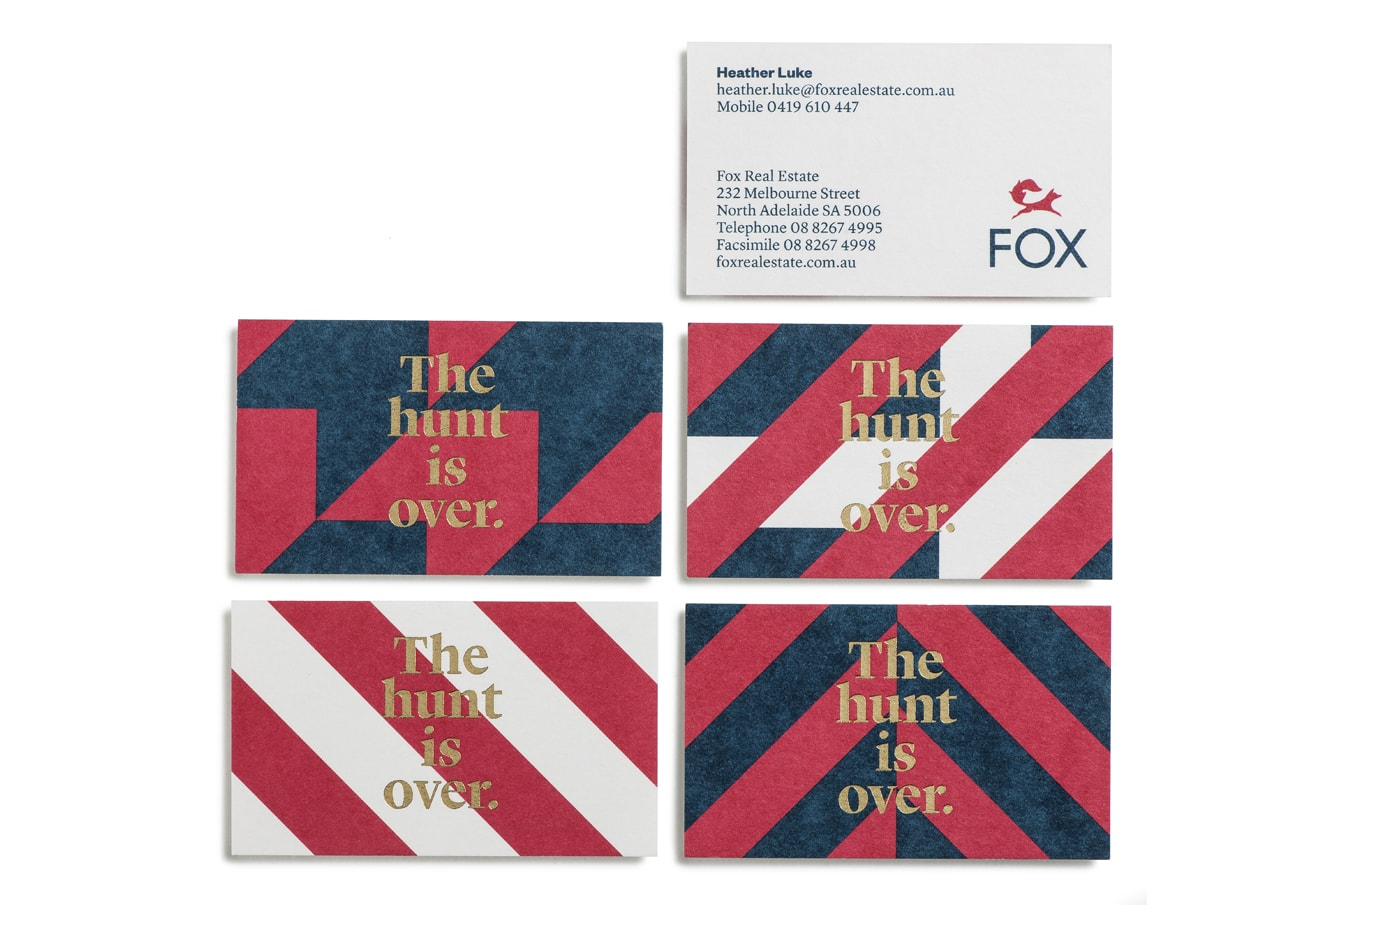 fox-real-estate-realtor-business-card